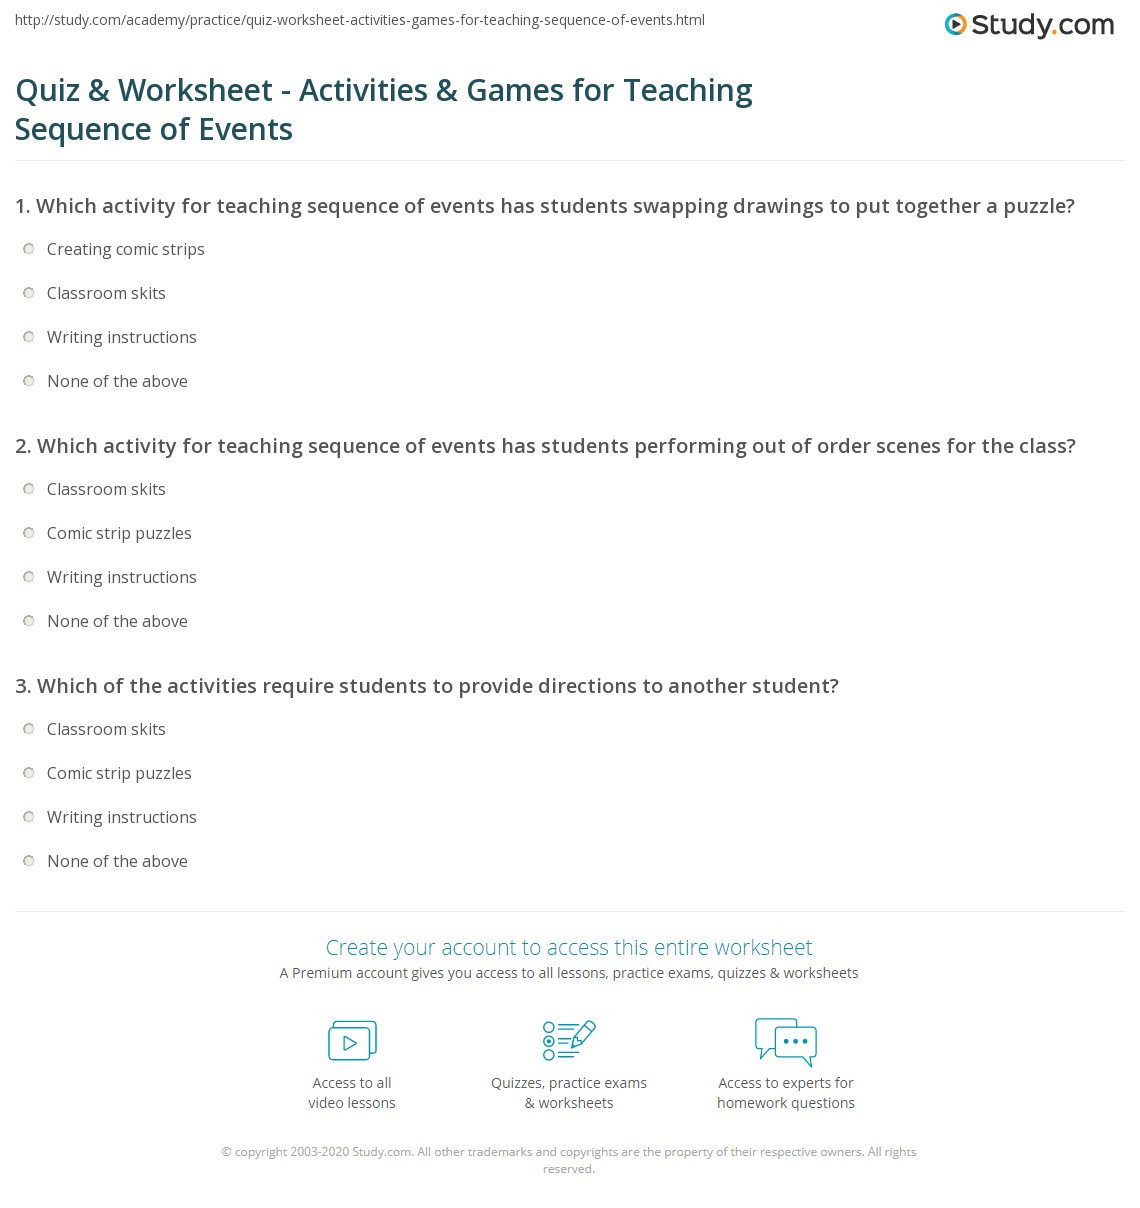 Sequencing Worksheets for Middle School Quiz & Worksheet Activities & Games for Teaching Sequence